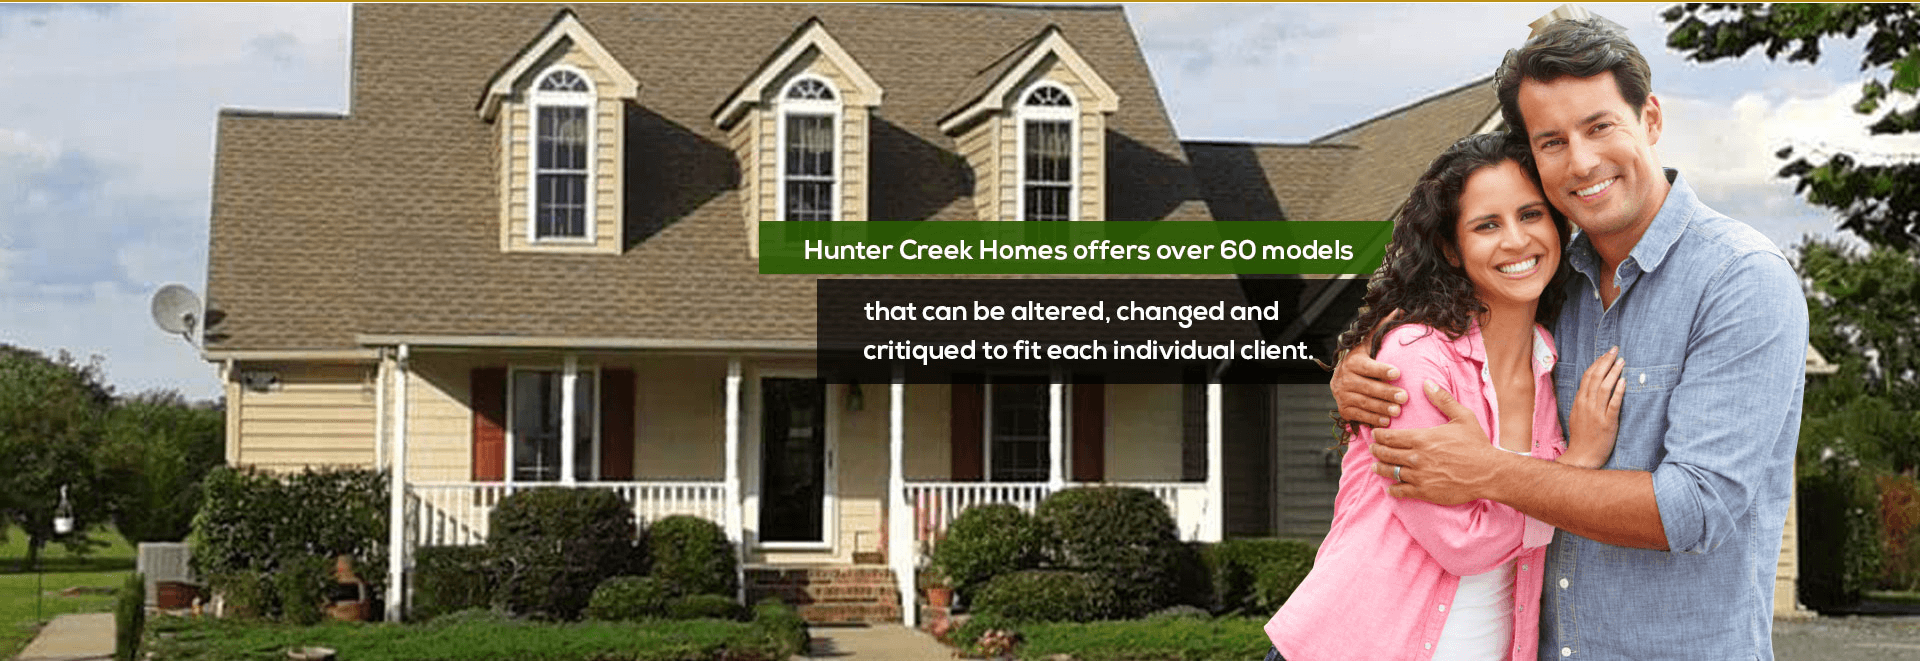 hunter creek homes ad offering over 60 models showing a man and a women and a tan house with grey shingles and red shutters